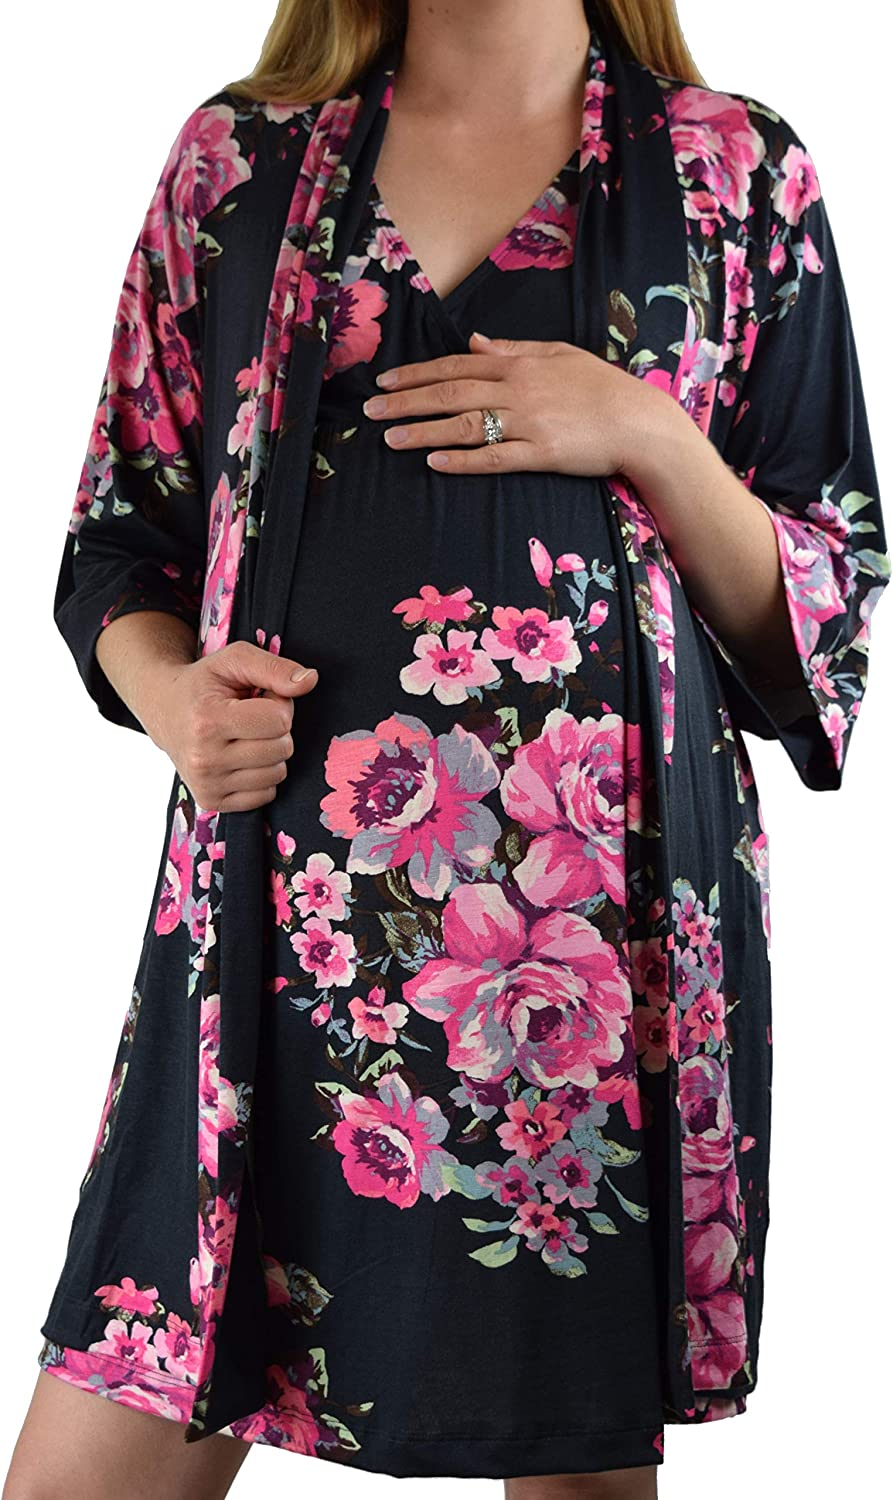 Embrace Your Bump 2 in 1 Maternity Super Nursing Nightgow Soft security year warranty